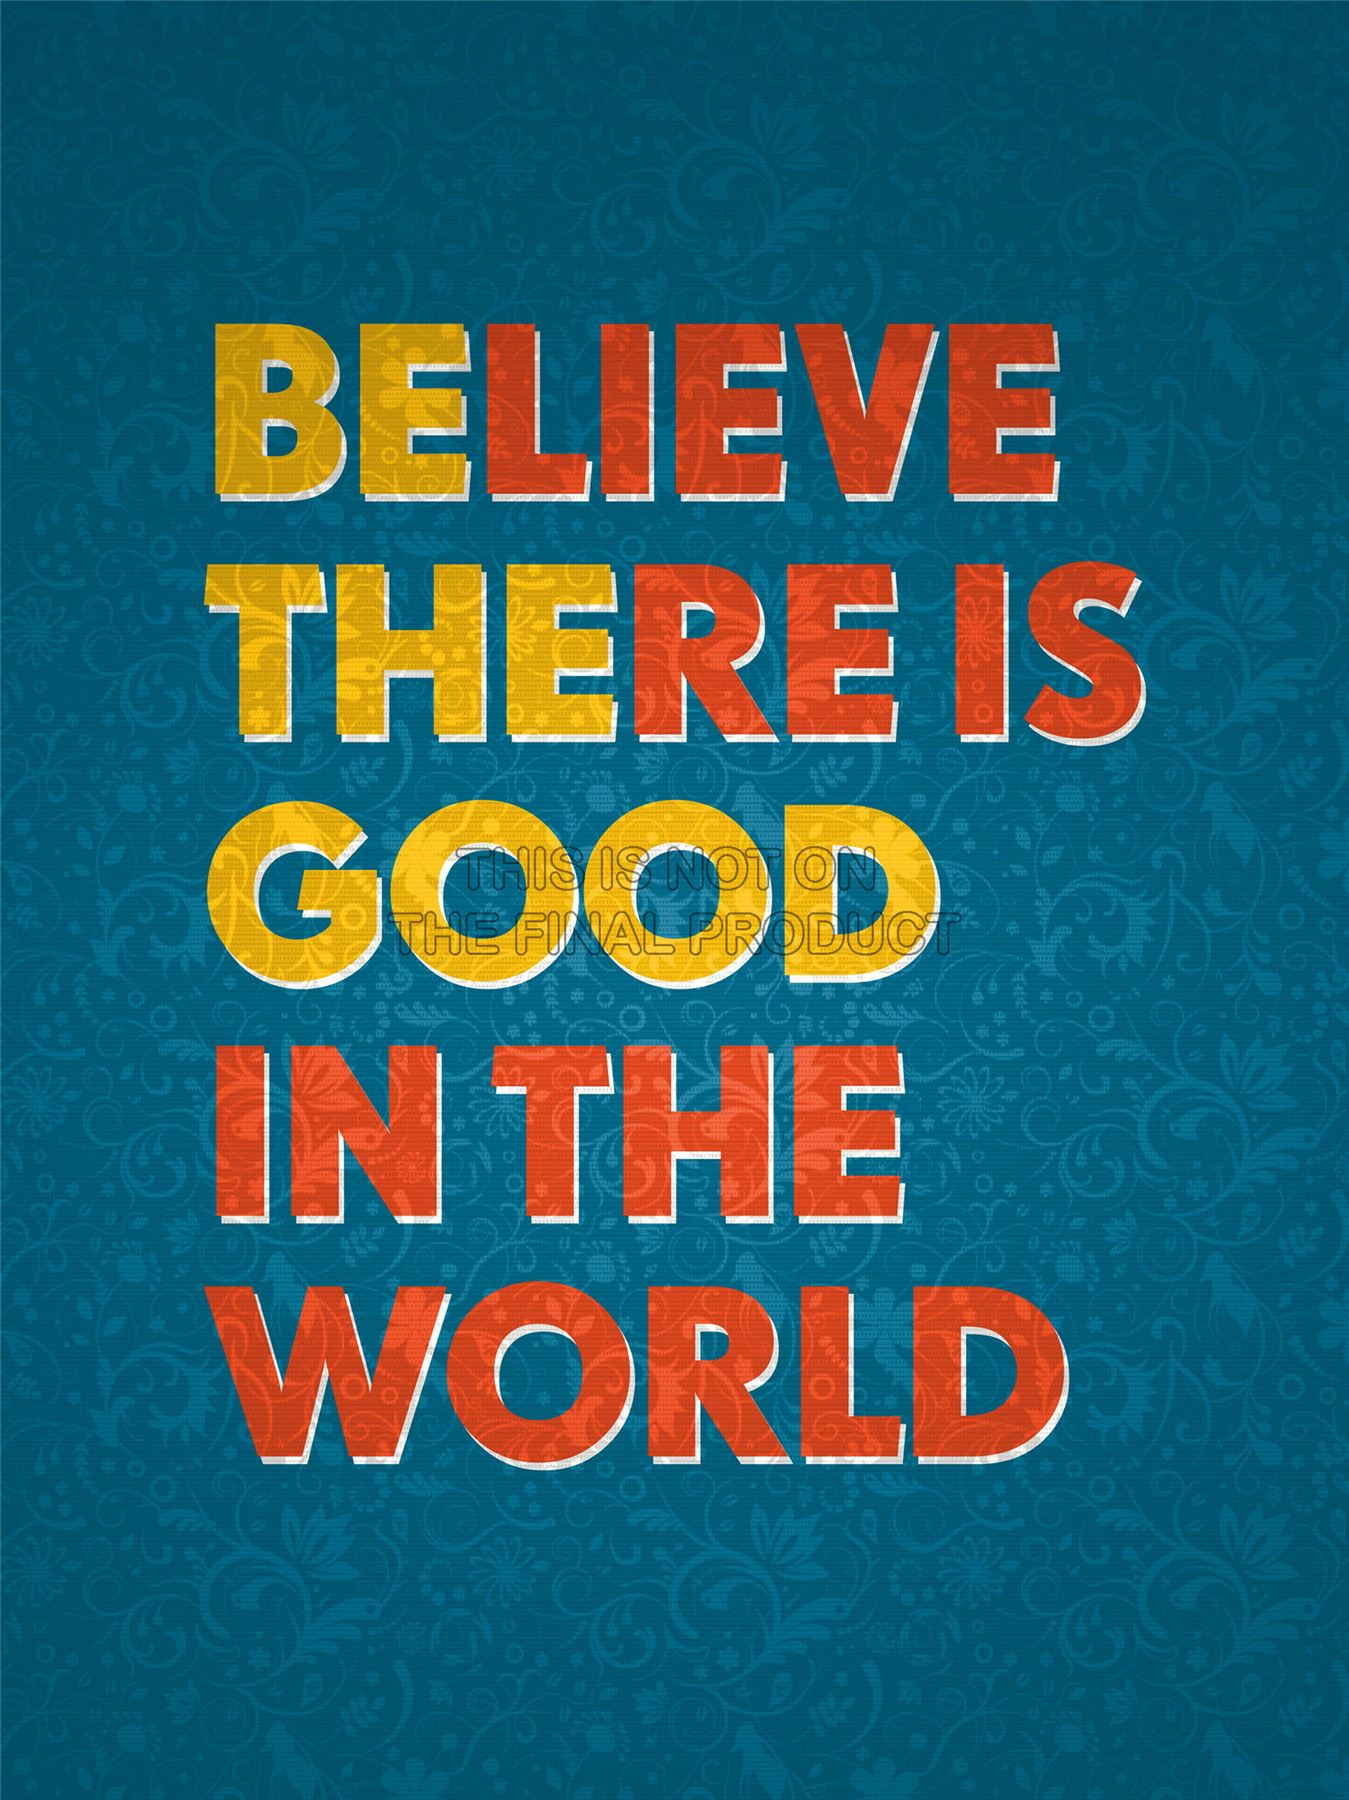 ... BELIEVE THERE GOOD WORLD BE TYPOGRAPHY QUOTE TEXTURE POSTER QU213A